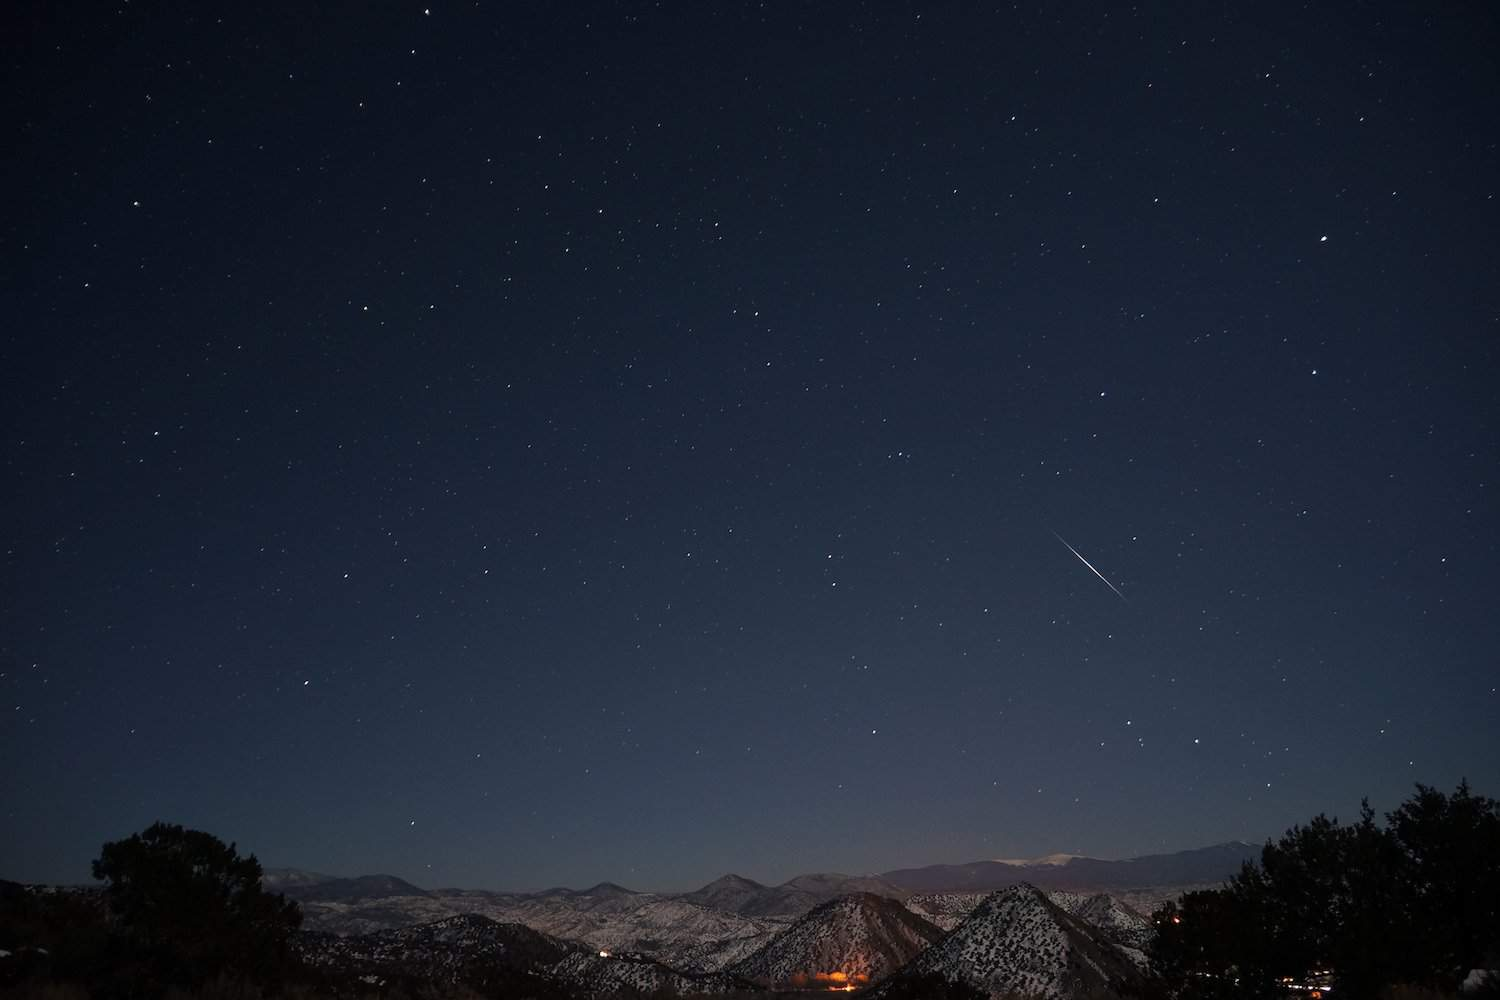 Night Sky in January - Quadrantids - Mike Lewinski via Flickr